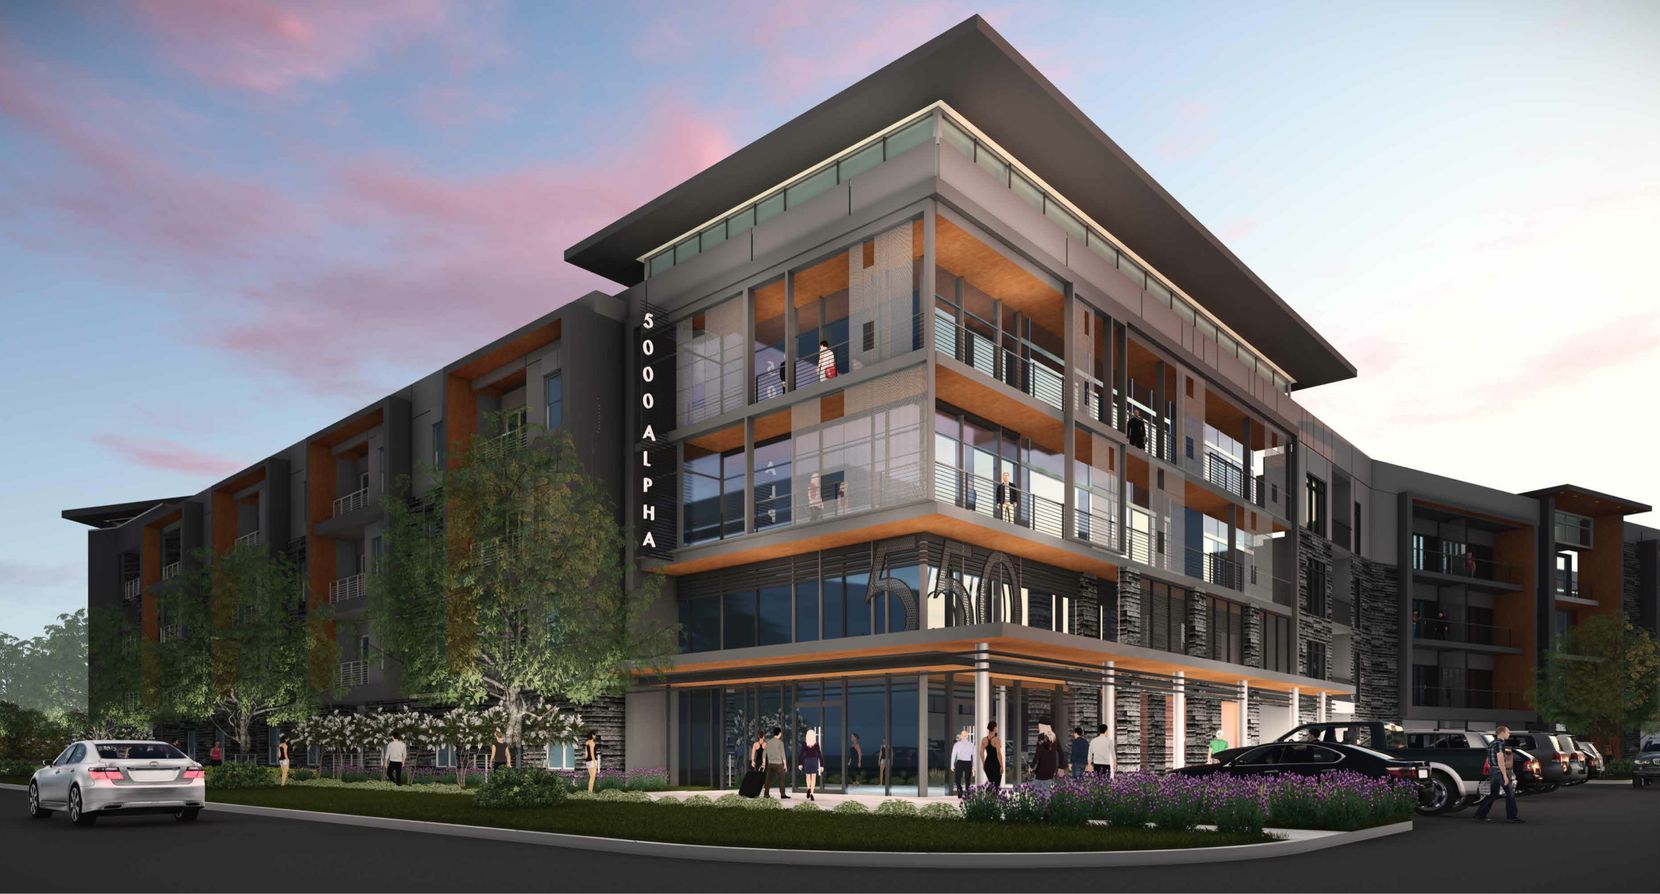 Apartment builder JPI would build more than 400 apartments in the project.